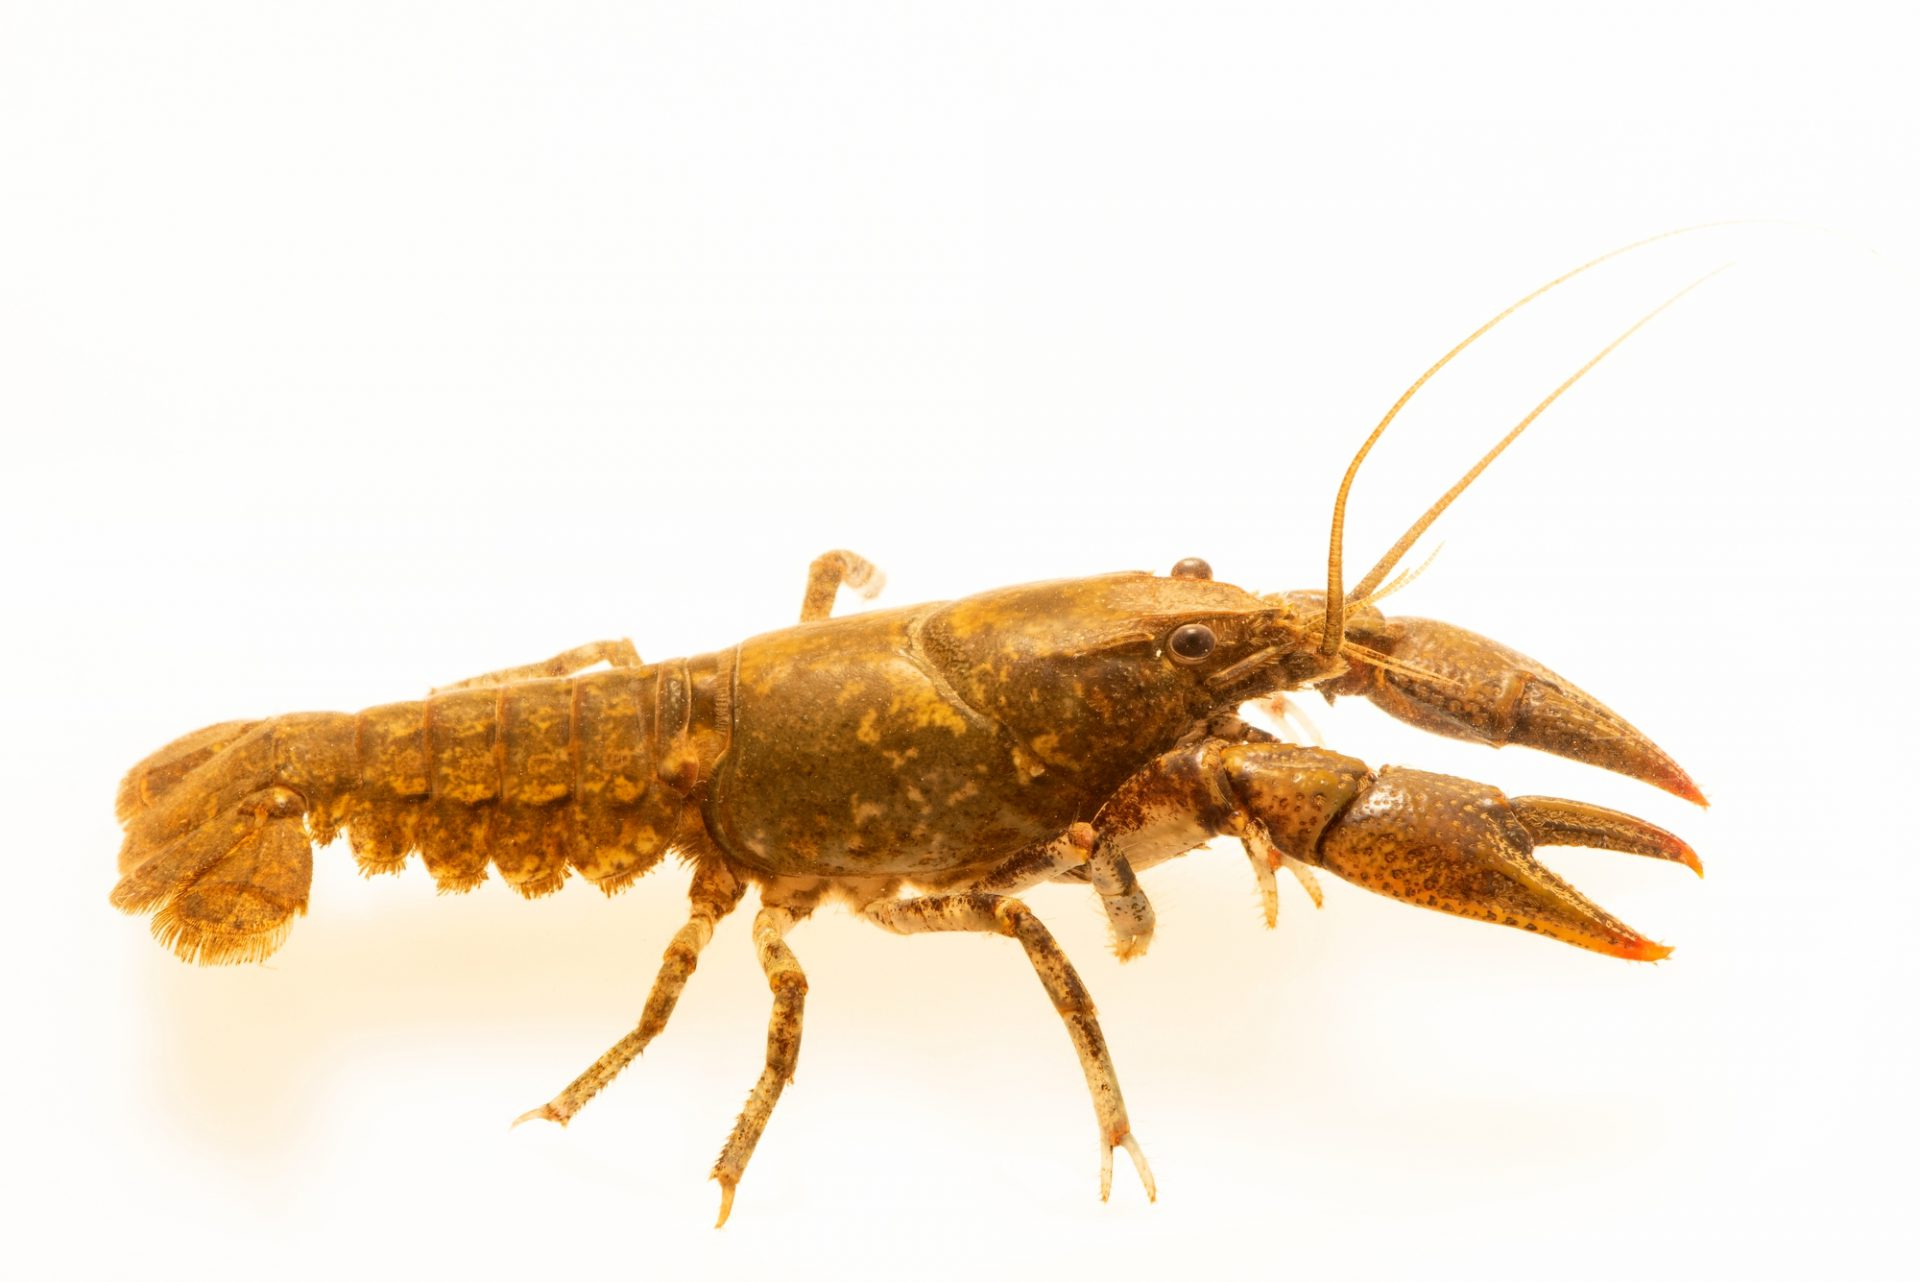 Photo: Big South Fork crayfish, Cambarus bouchardi, at West Liberty University in West Liberty, WV. This specimen is from Roaring Ponch Creek, TN